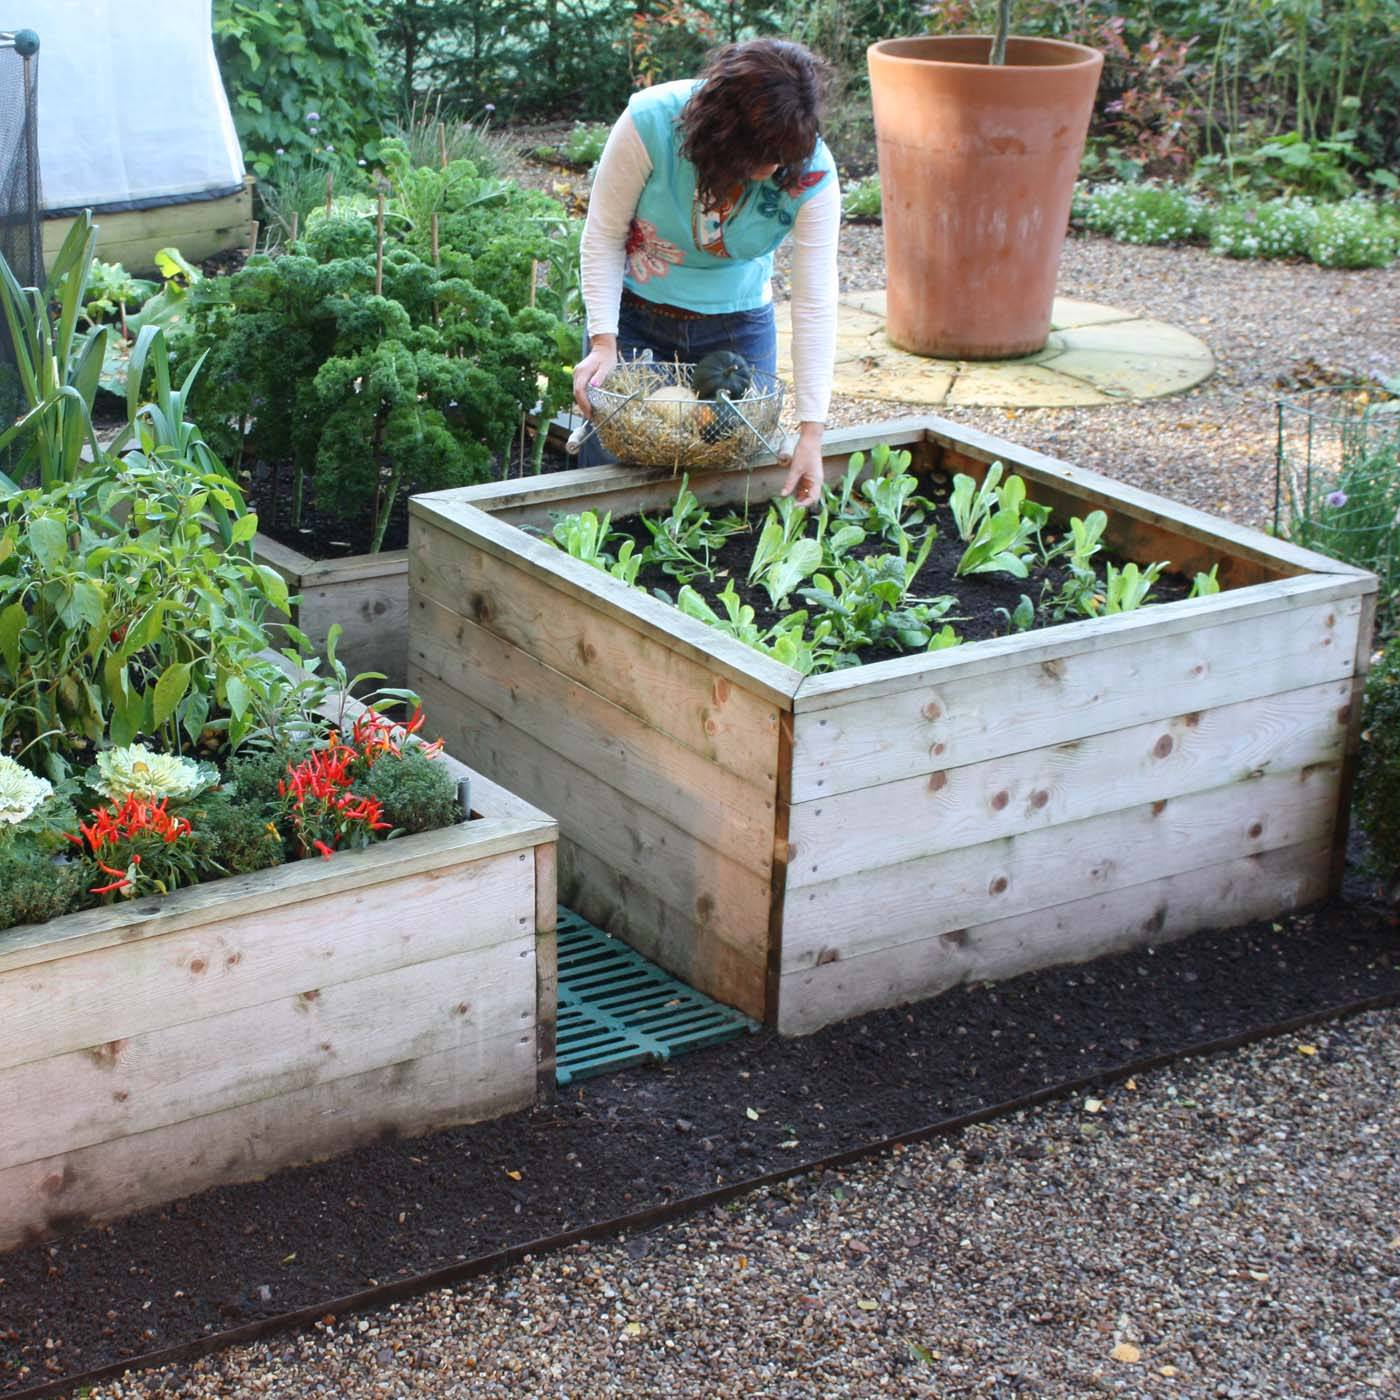 10 Ways To Style Your Very Own Vegetable Garden: Raised Beds & Garden Planters